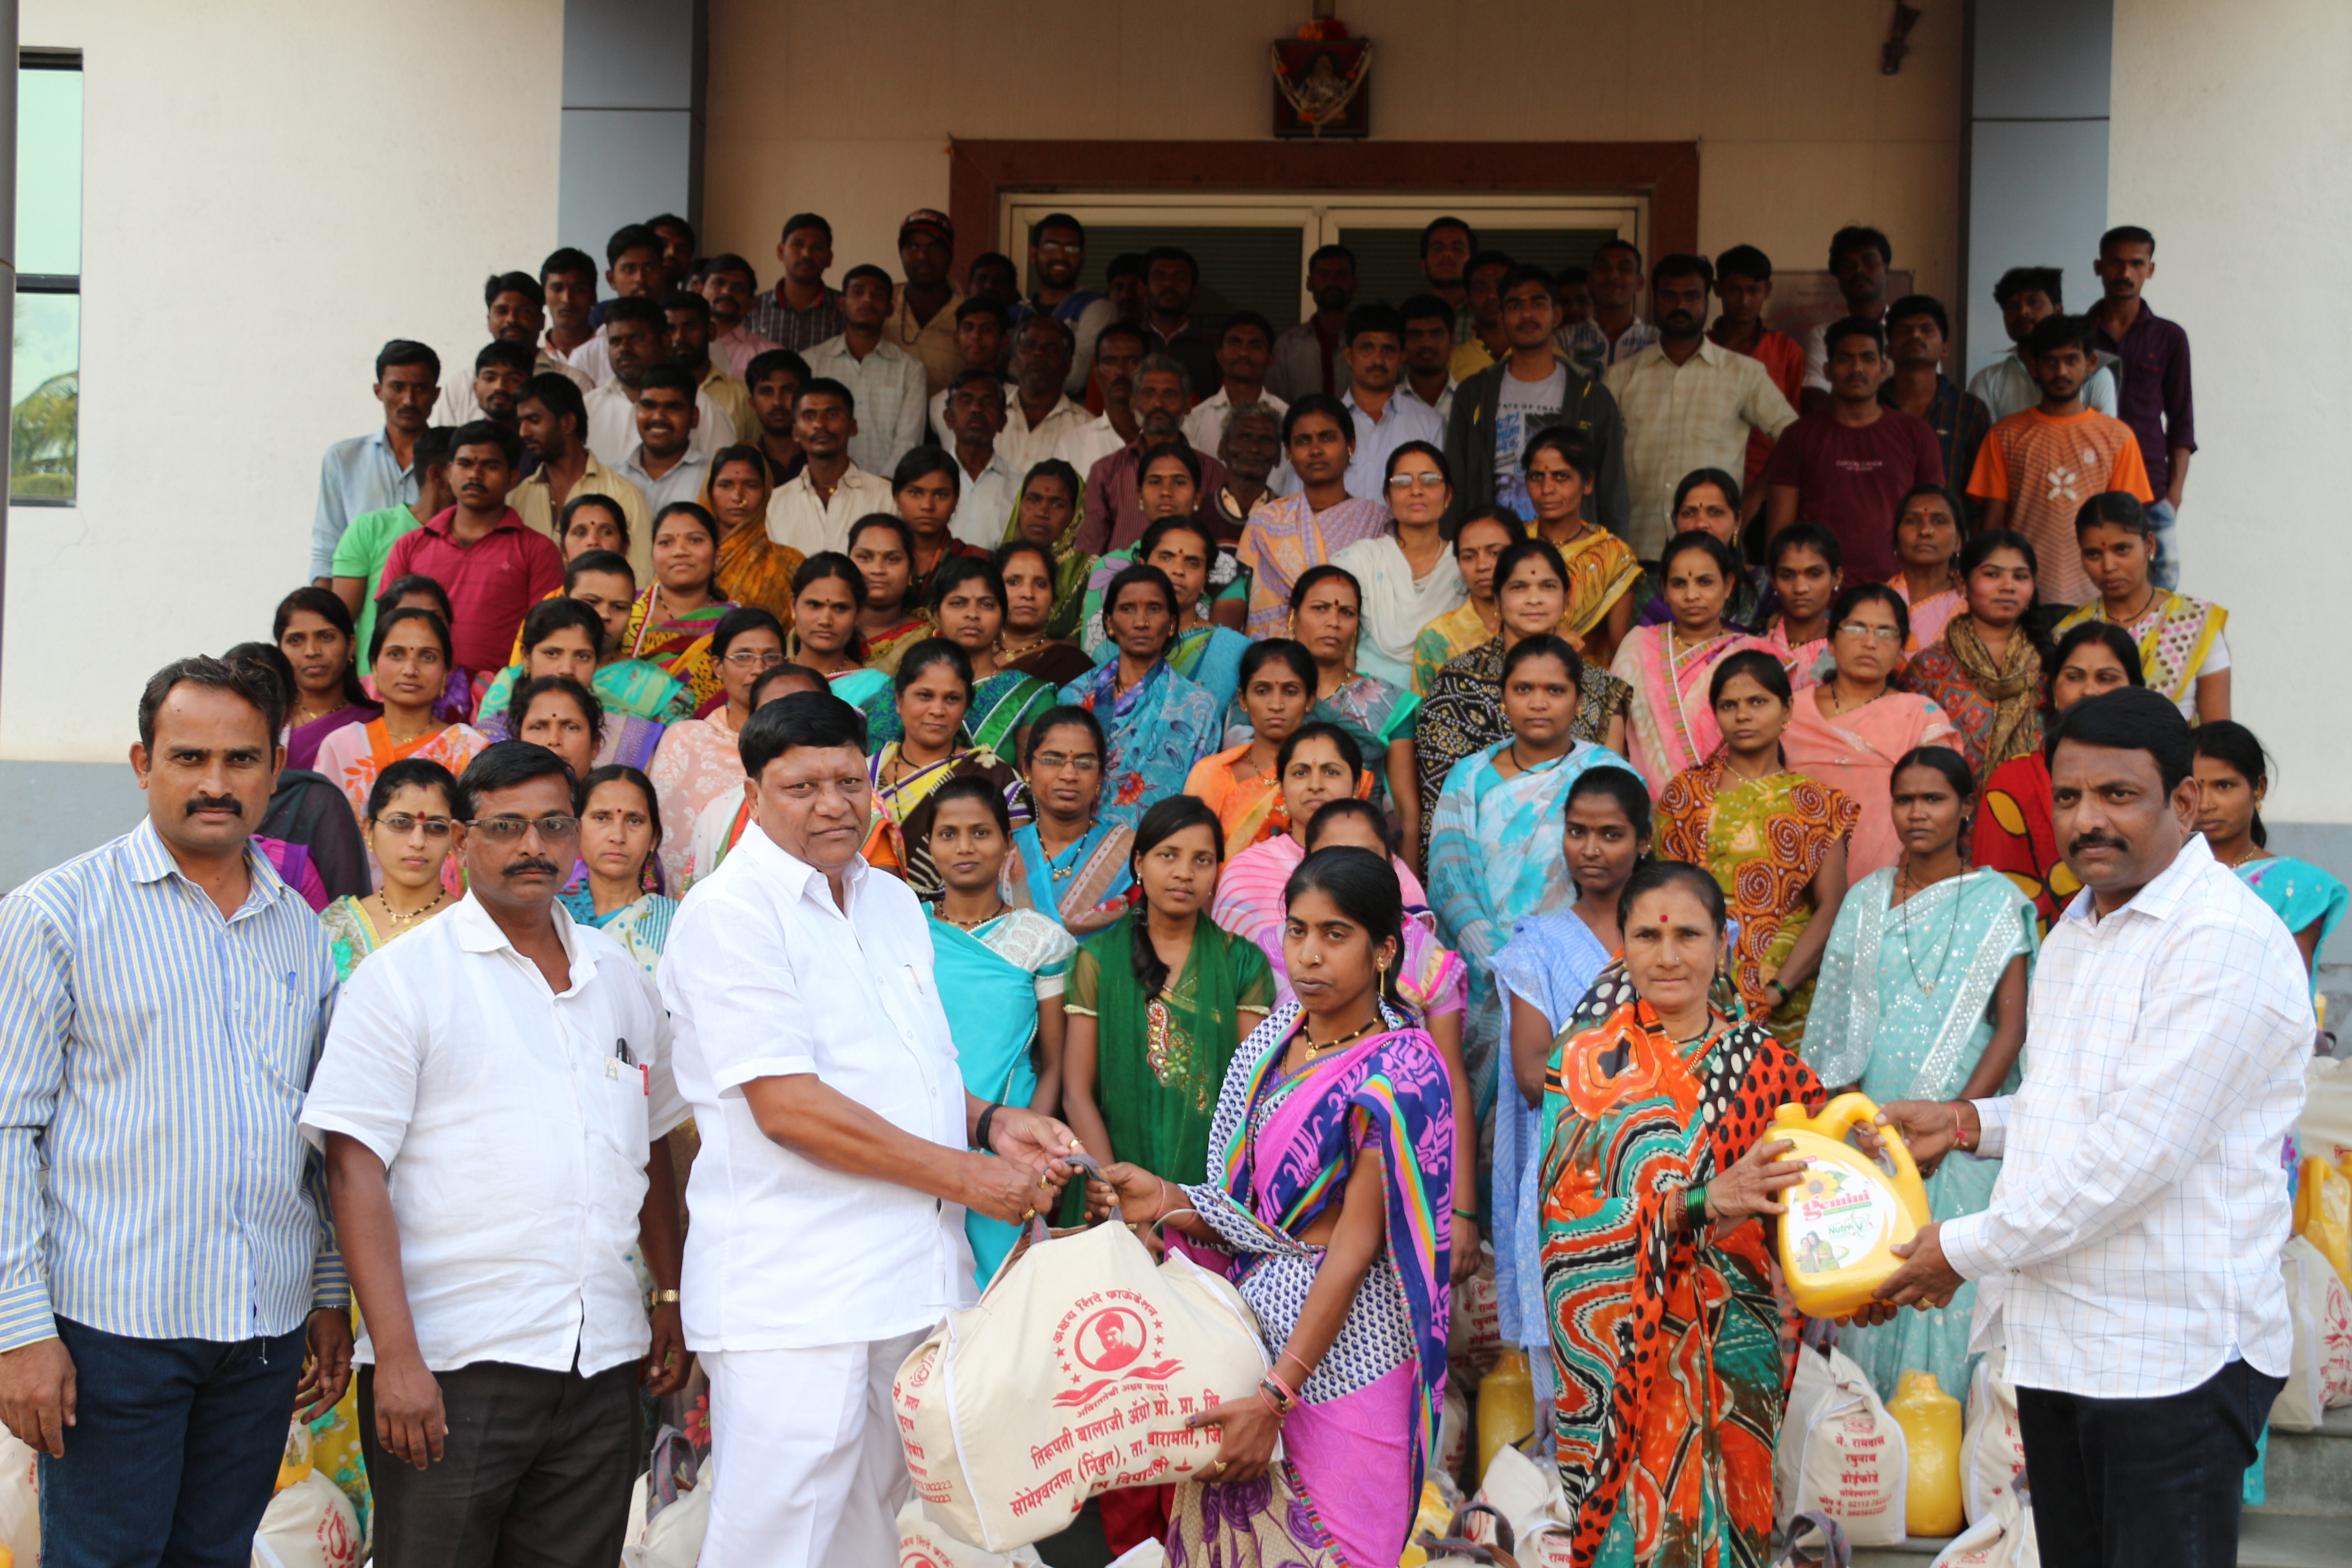 Distribution of Diwali gifts to the poor people in the surrounding area 2015-2017